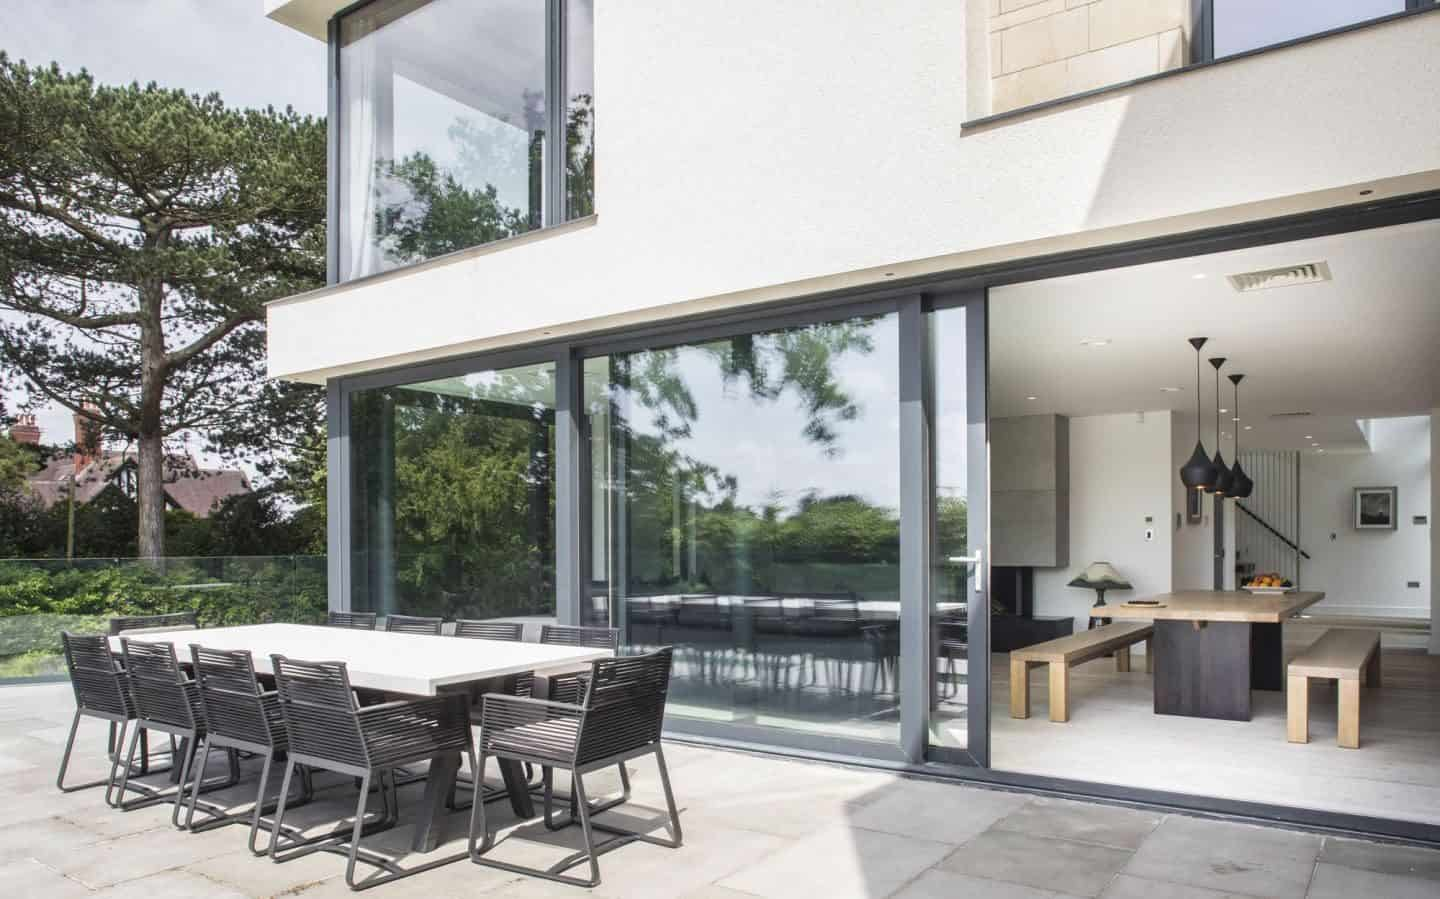 Pilkington Glass - Large glazed sliding doors from dining room out to garden